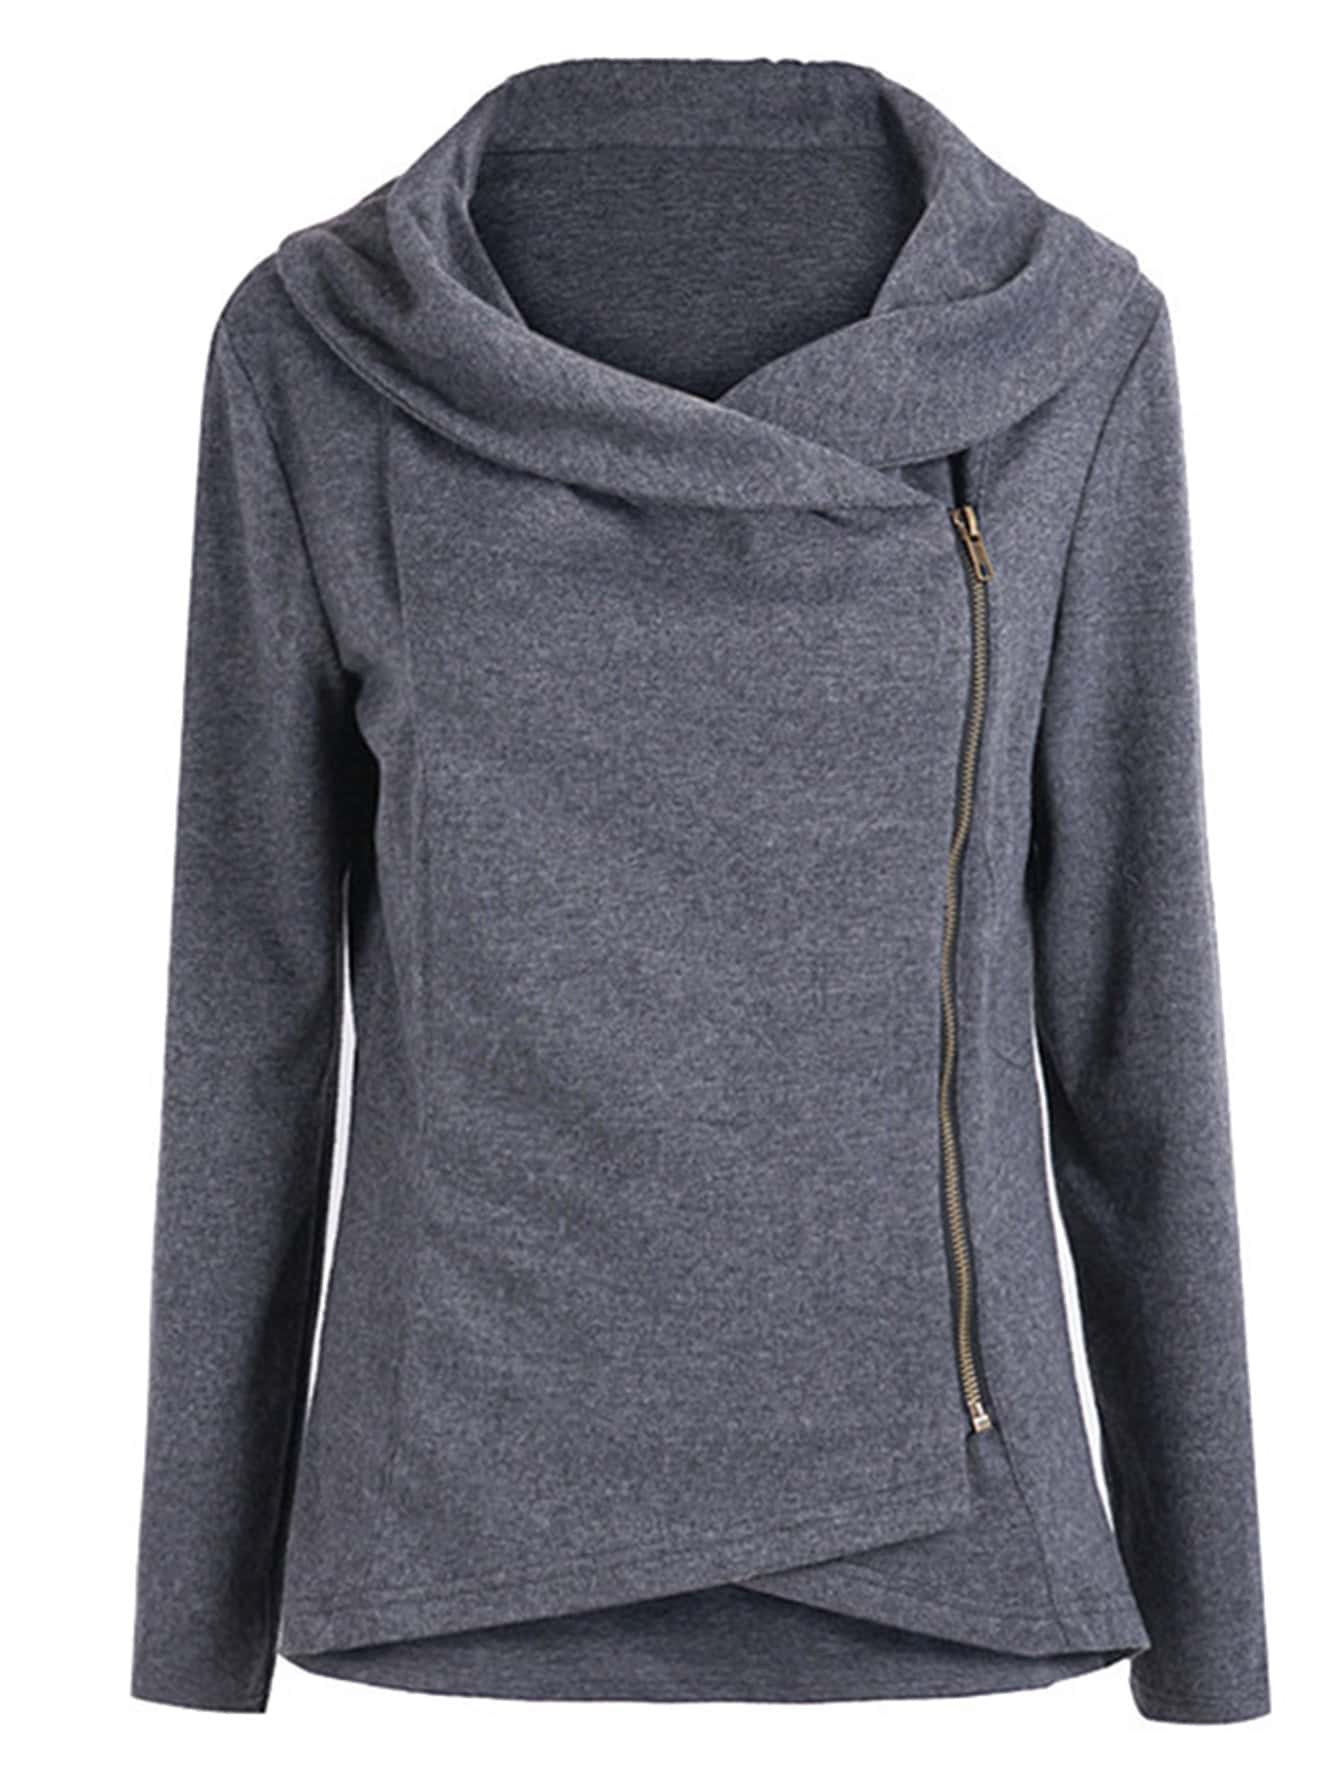 Image of Asymmetric Zip Outerwear